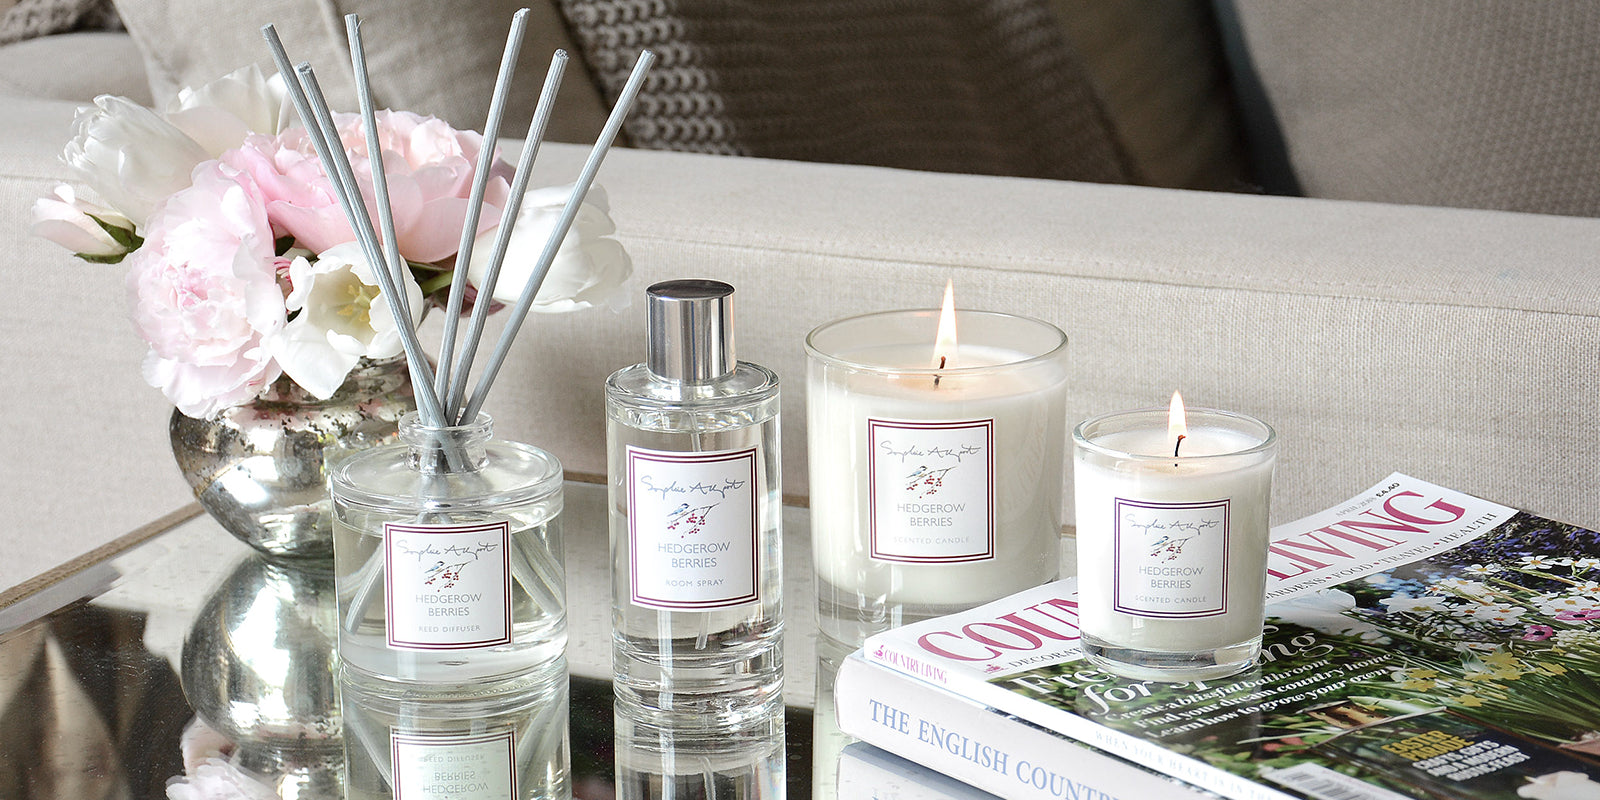 Hedgerow Berries Home Scent by Sophie Allport